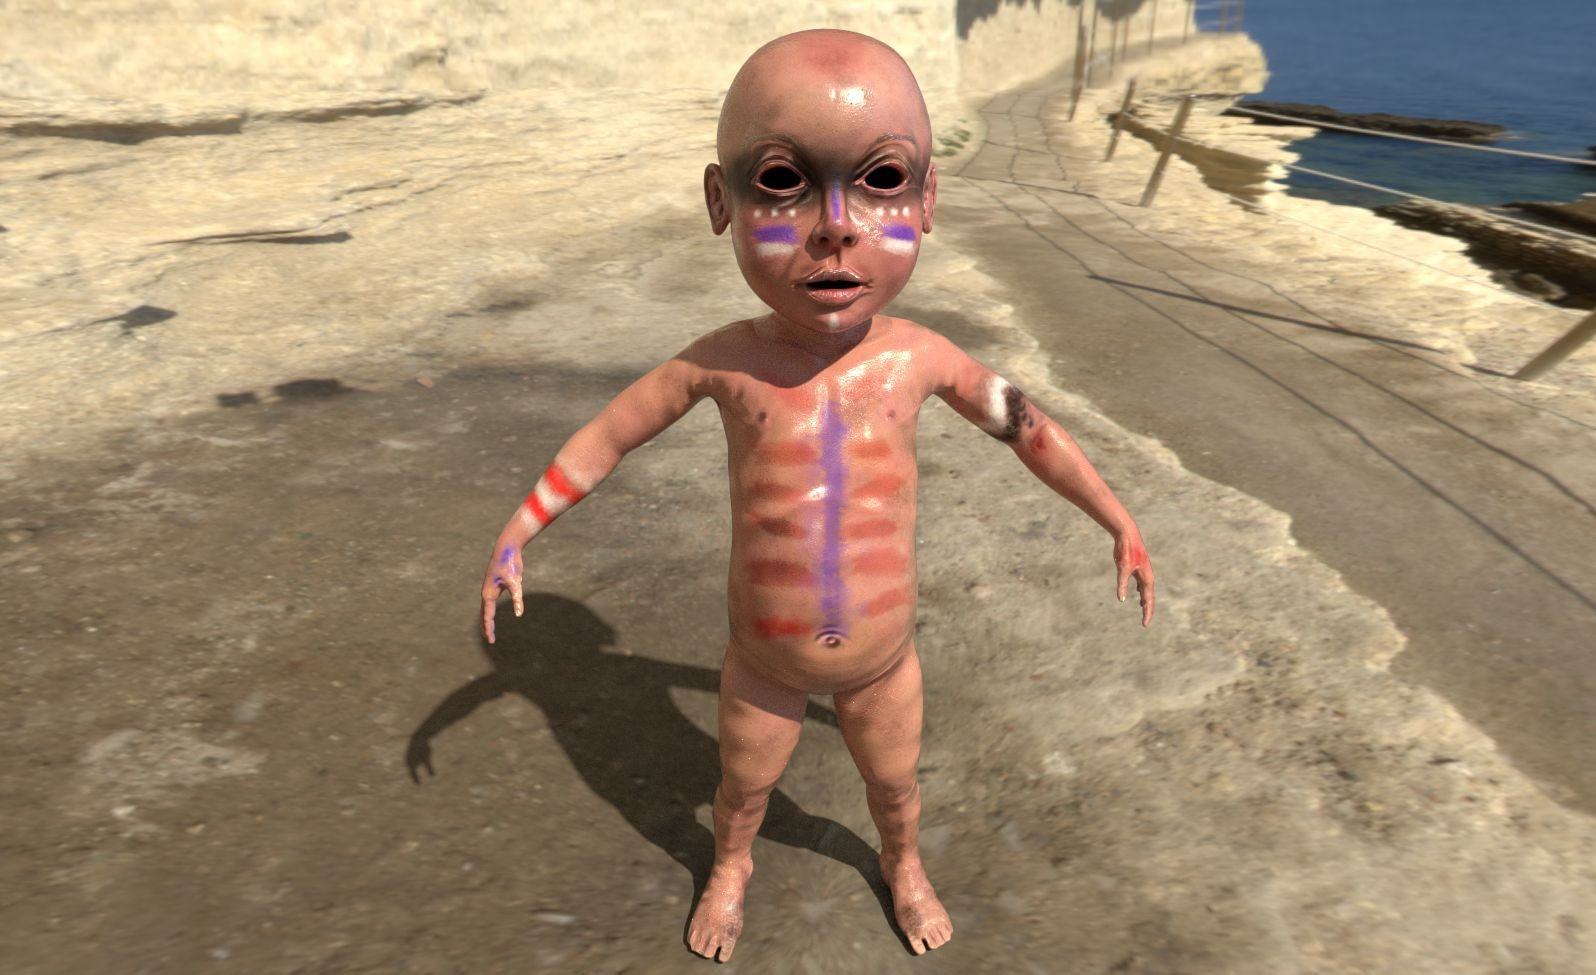 Basecolor of baby has been made in Zbrush, then I exported normal maps and base color maps, corrected them in Photoshop, sent to Substance painter for additional texturing, this is one of the tests.